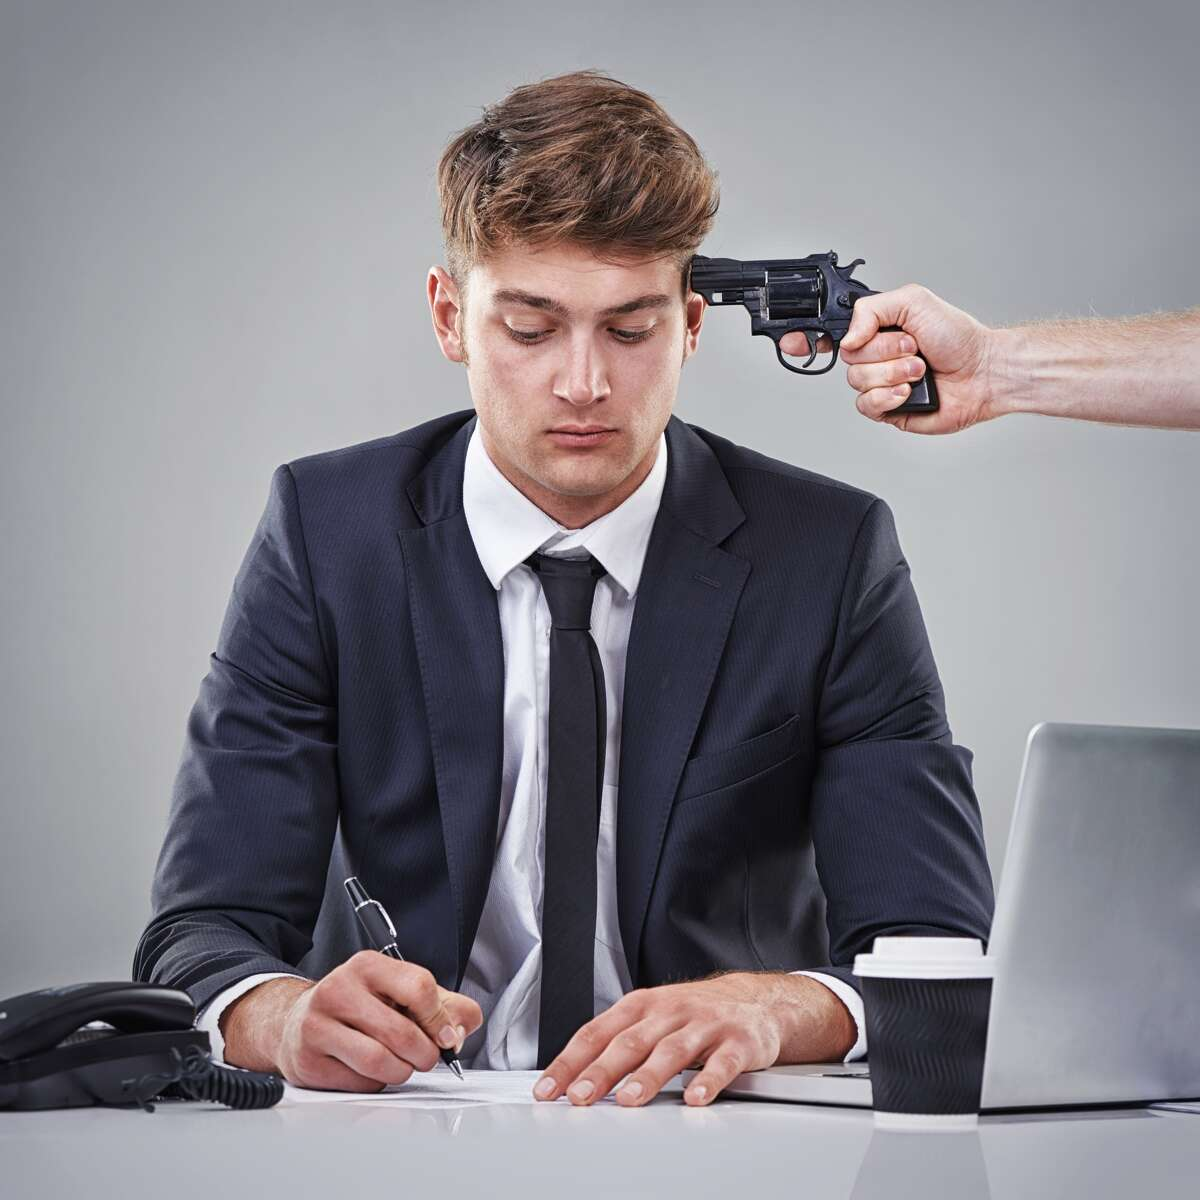 A business man signing a piece of paper with someone pointing a gun at his headhttp://195.154.178.81/DATA/i_collage/pi/shoots/783303.jpg